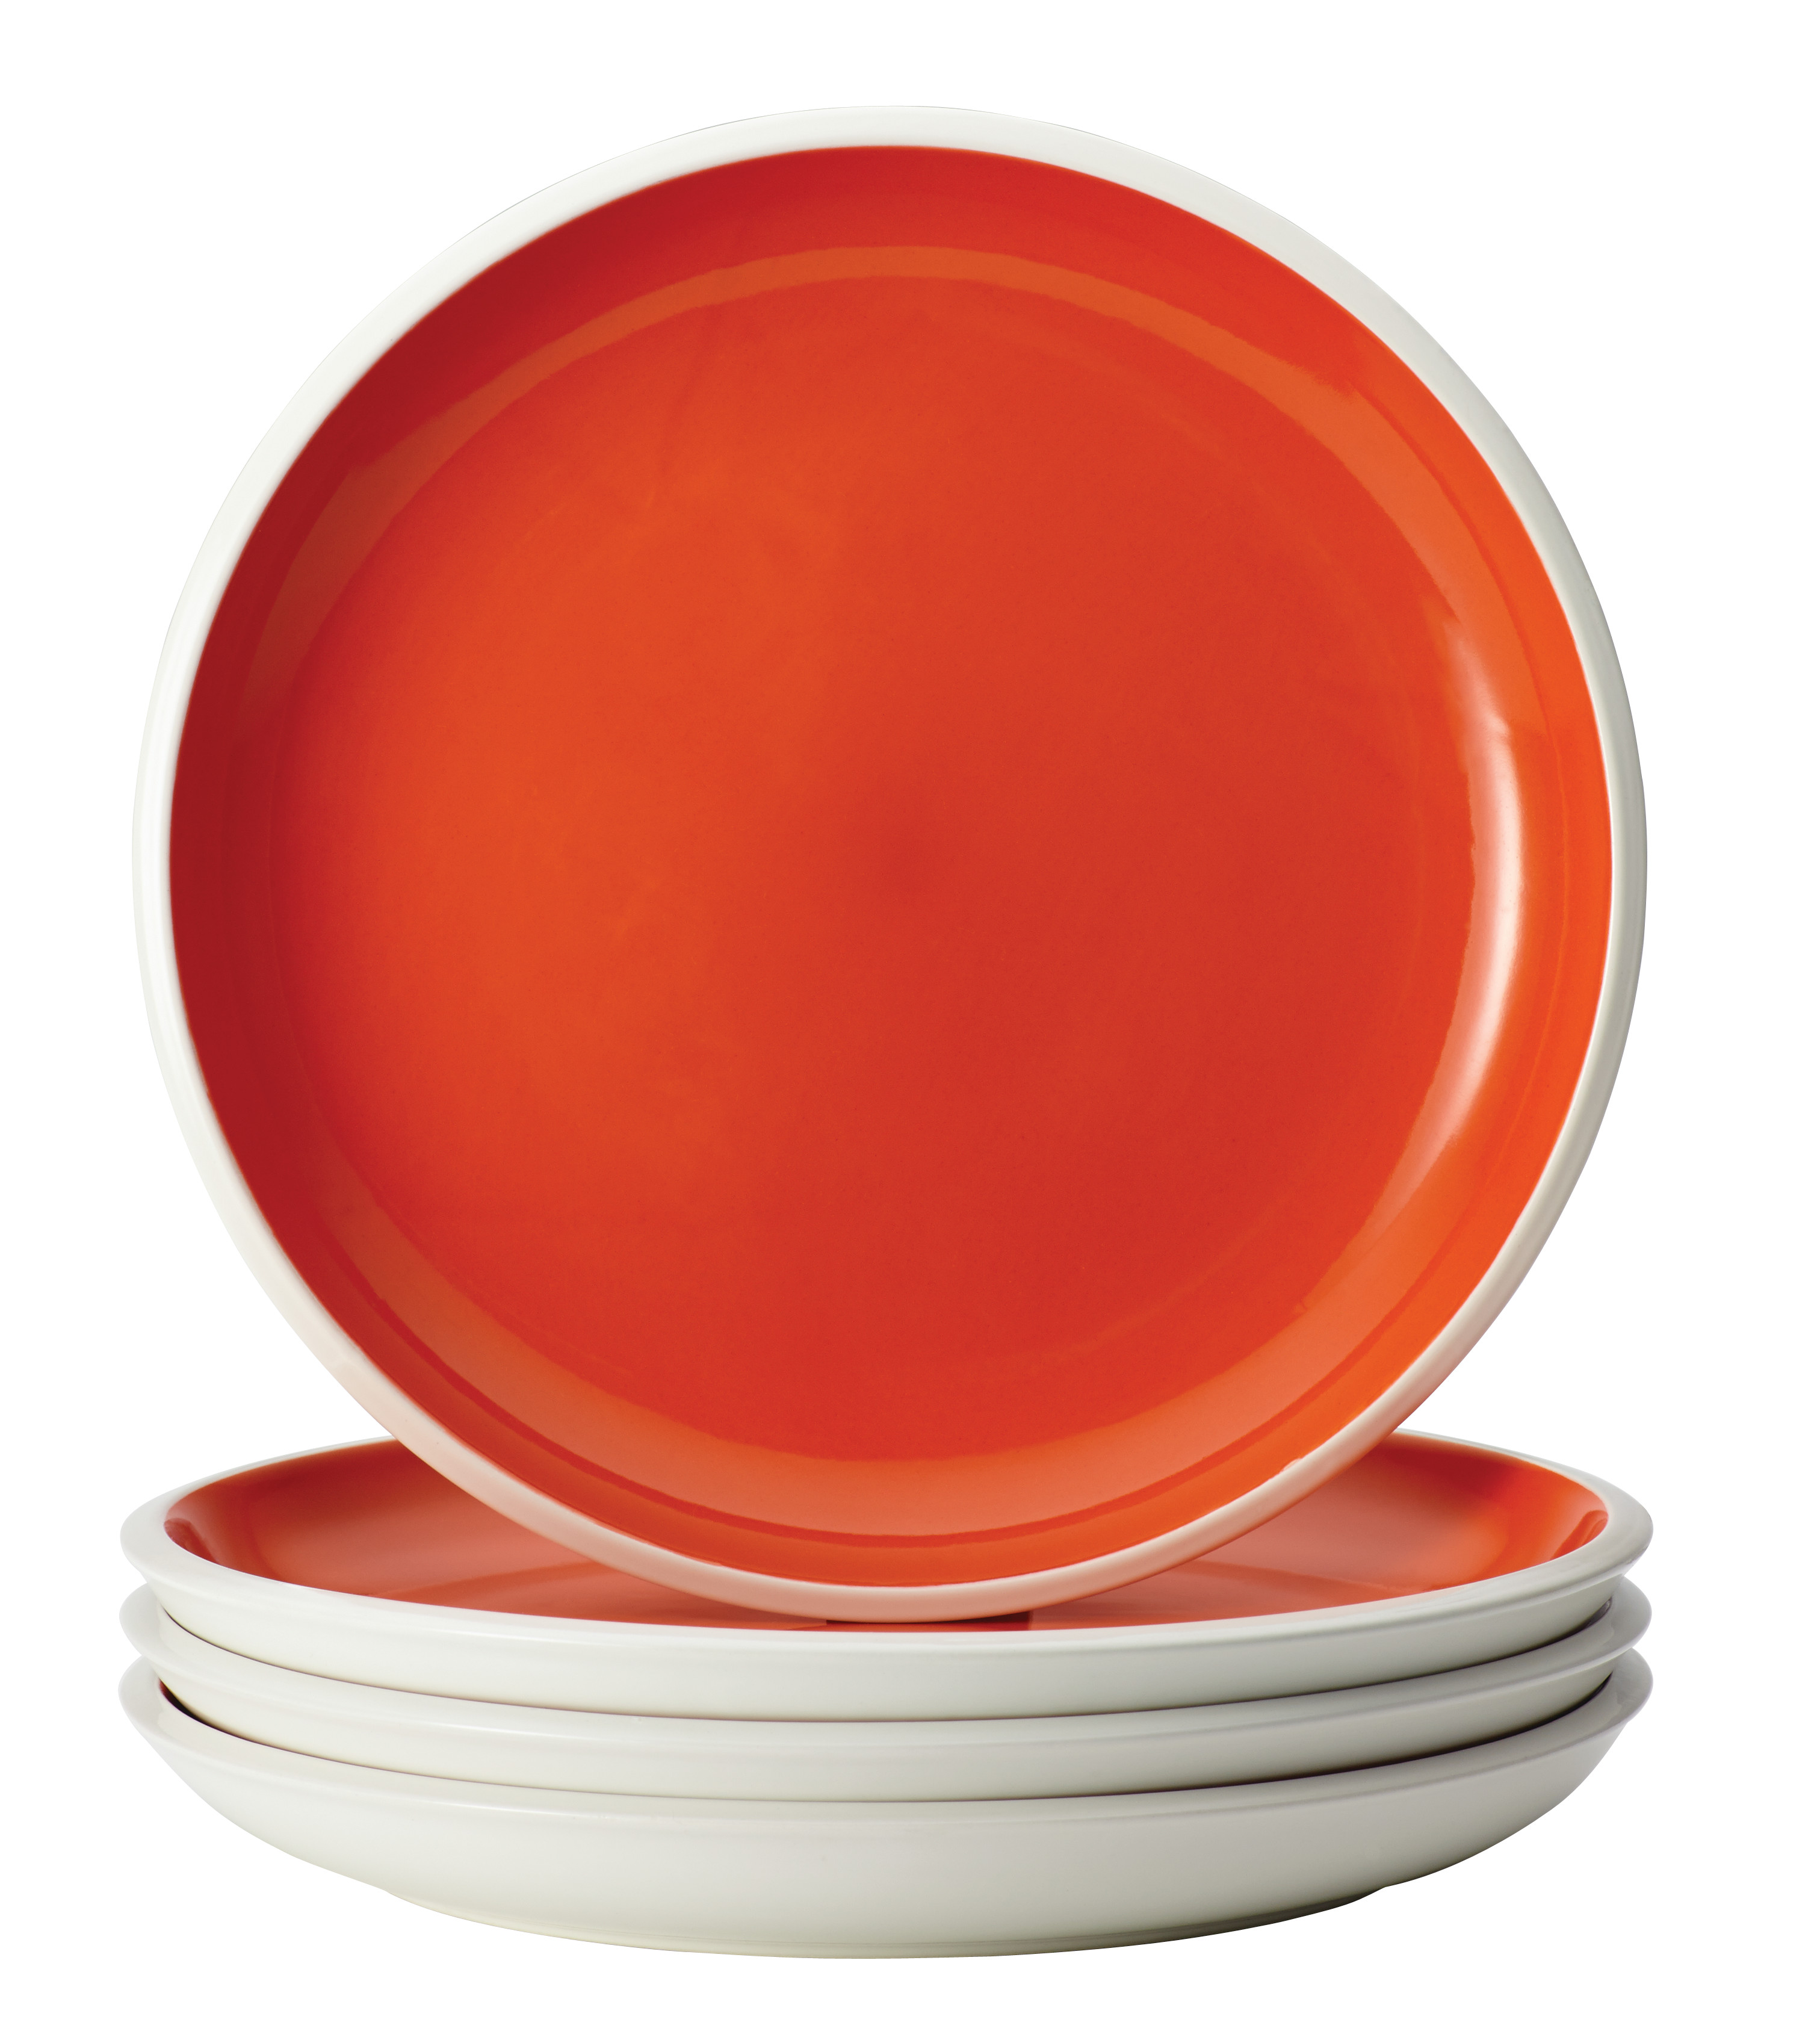 Rachael Ray Dinnerware Rise 4-Piece Stoneware Dinner Plate Set, Orange